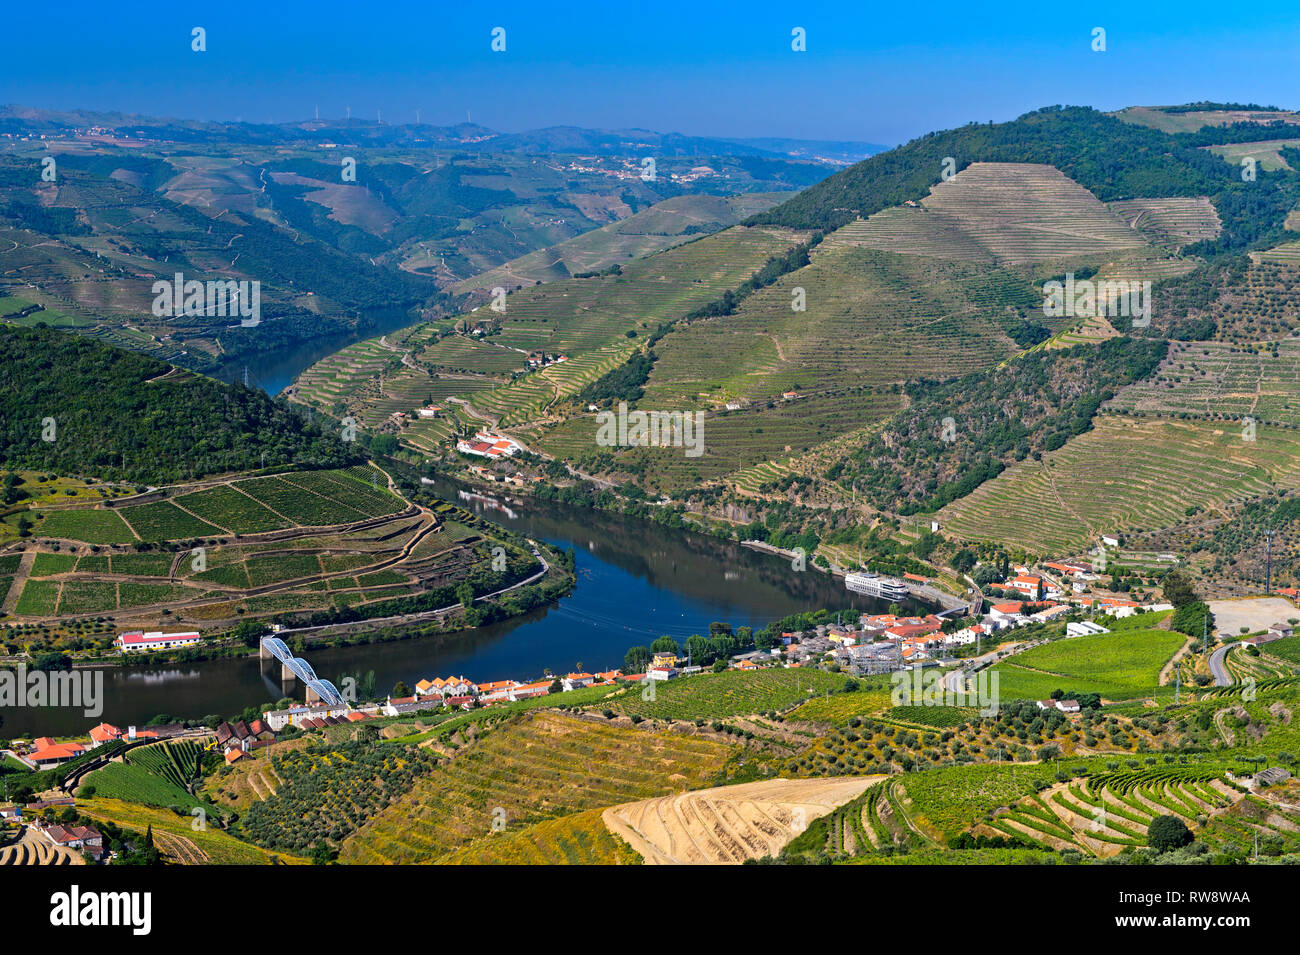 The municipality Pinhao at the Douro River in the port wine region Alto Douro, Pinhao, Douro Valley, Portugal - Stock Image